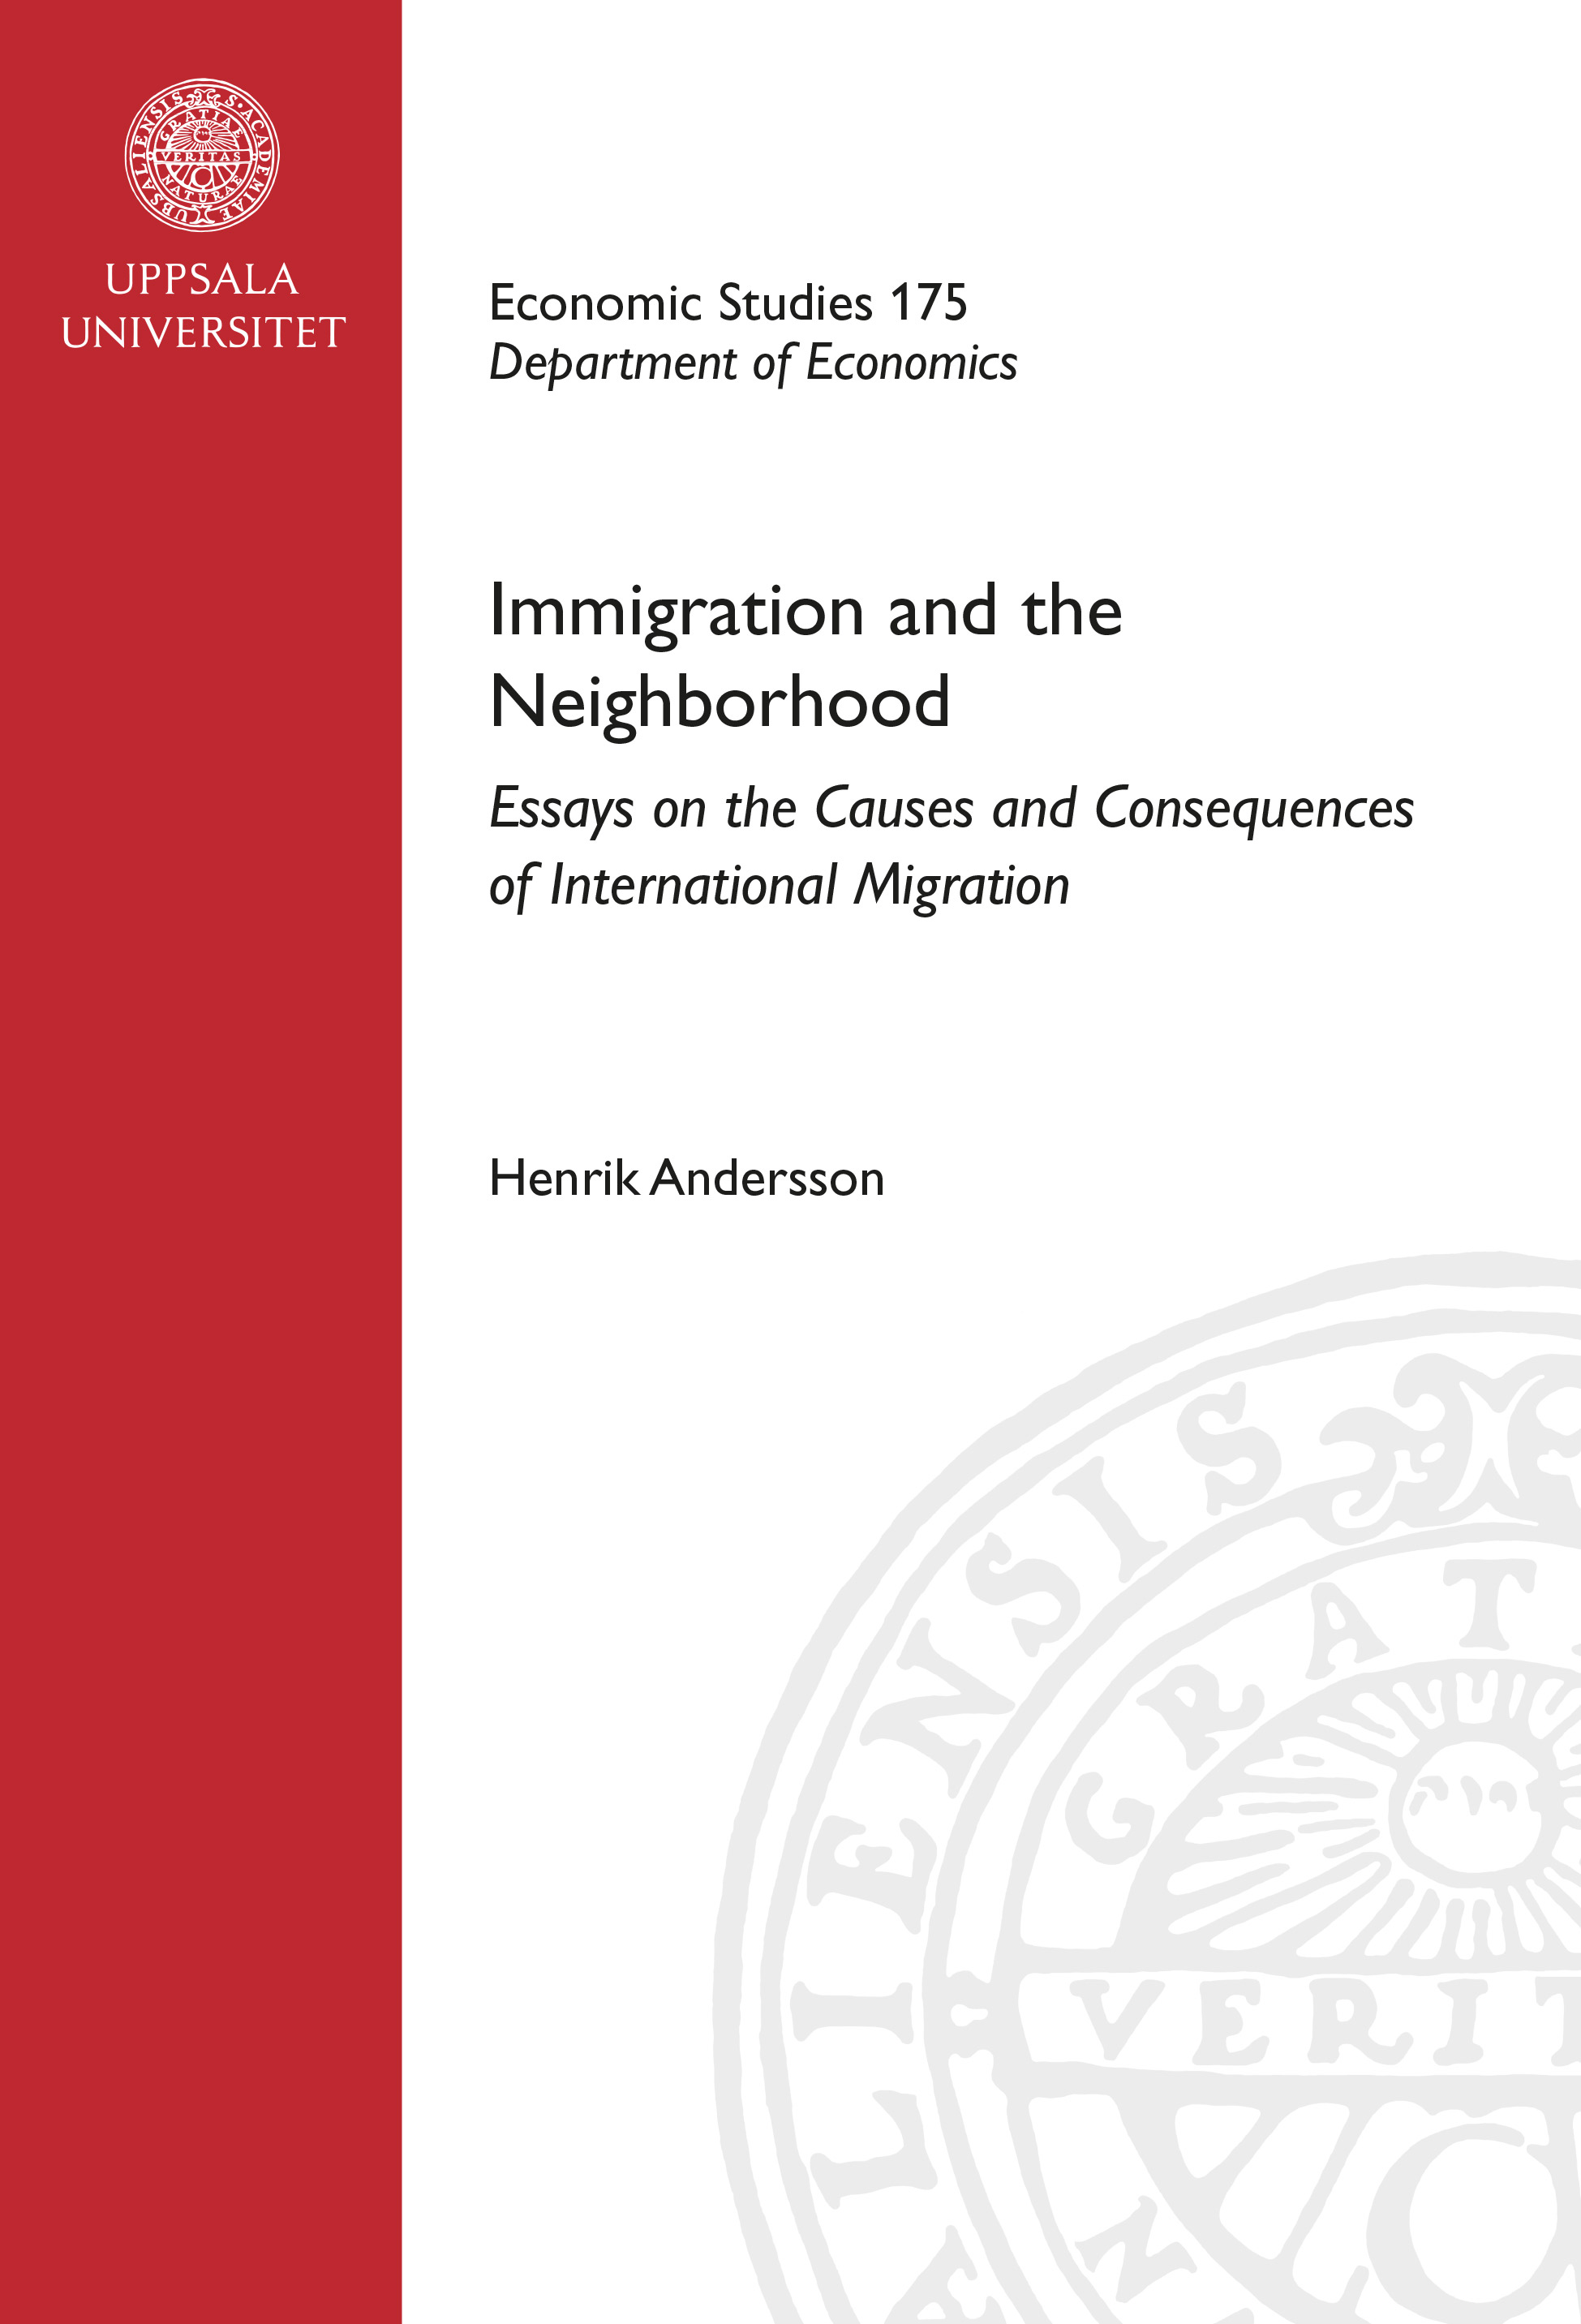 Immigration and the neighborhood essays on the causes and